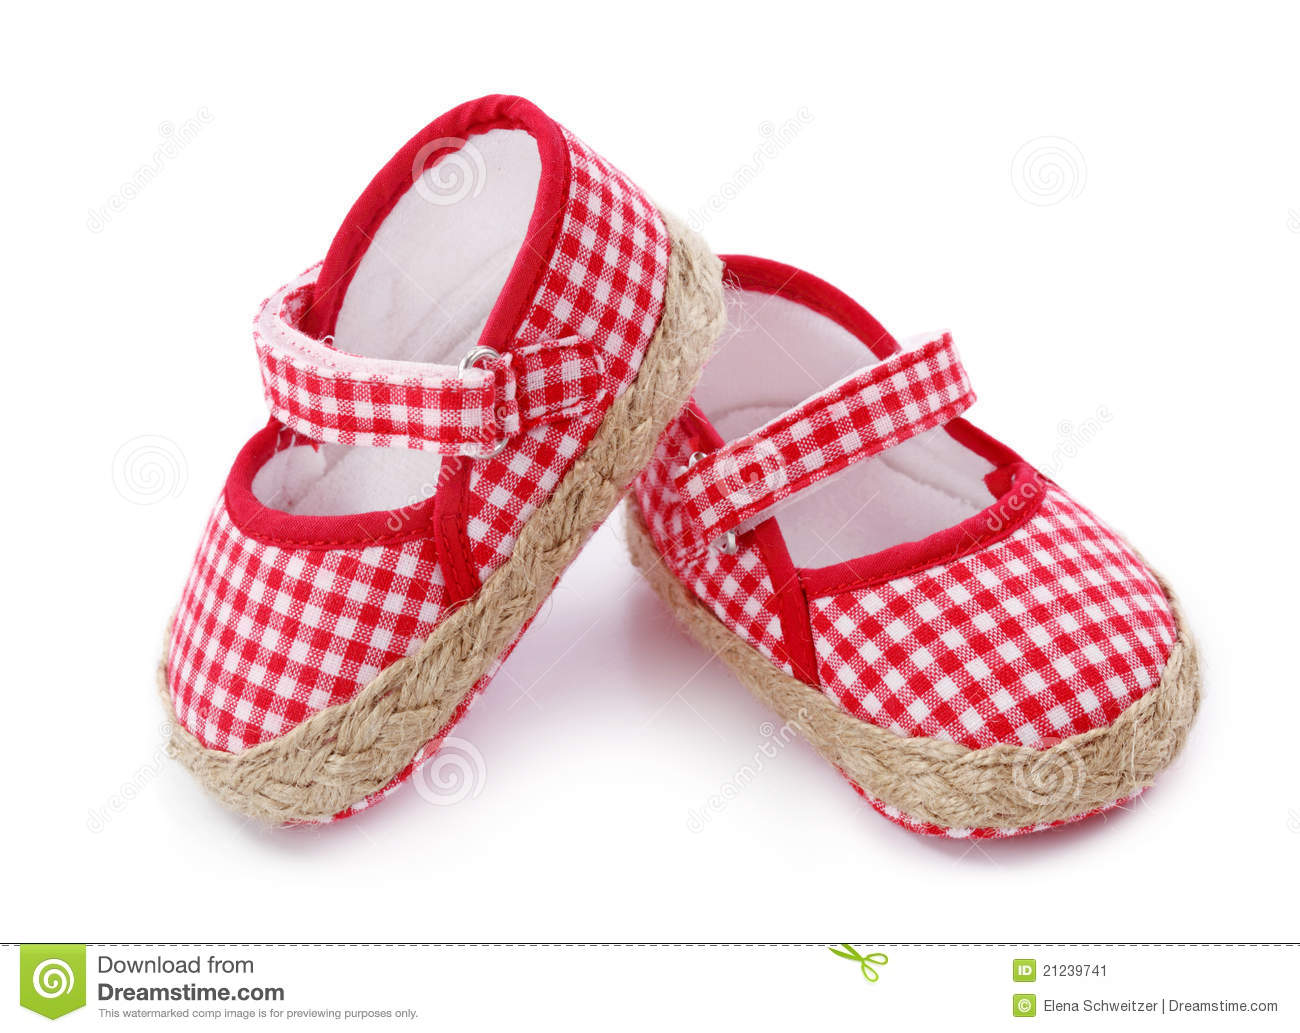 Baby Girl Shoes Stock Image - Image: 21239741